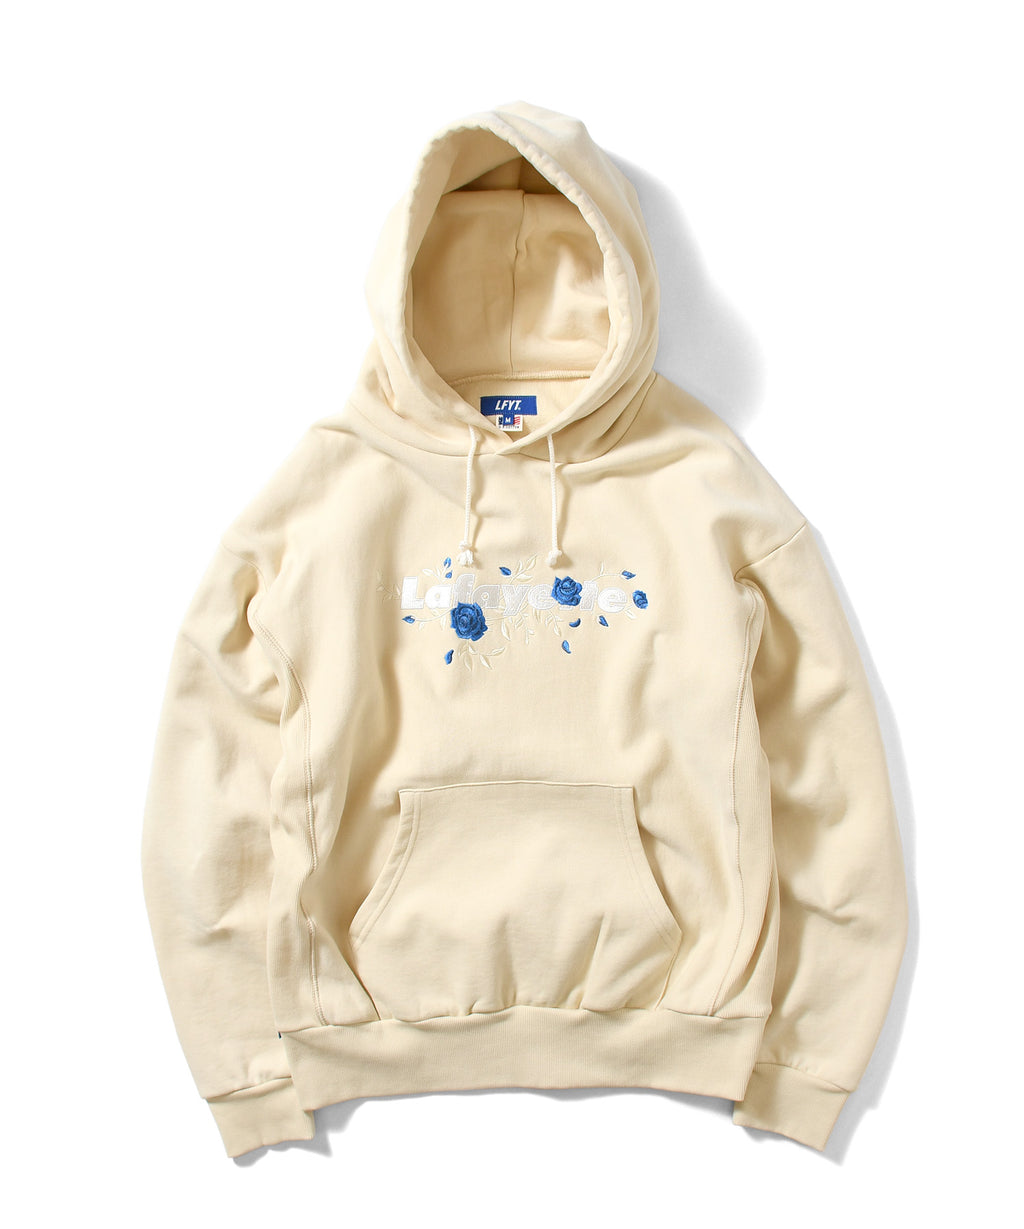 ROSE LOGO US COTTON HOODED SWEATSHIRT NATURAL LA200503